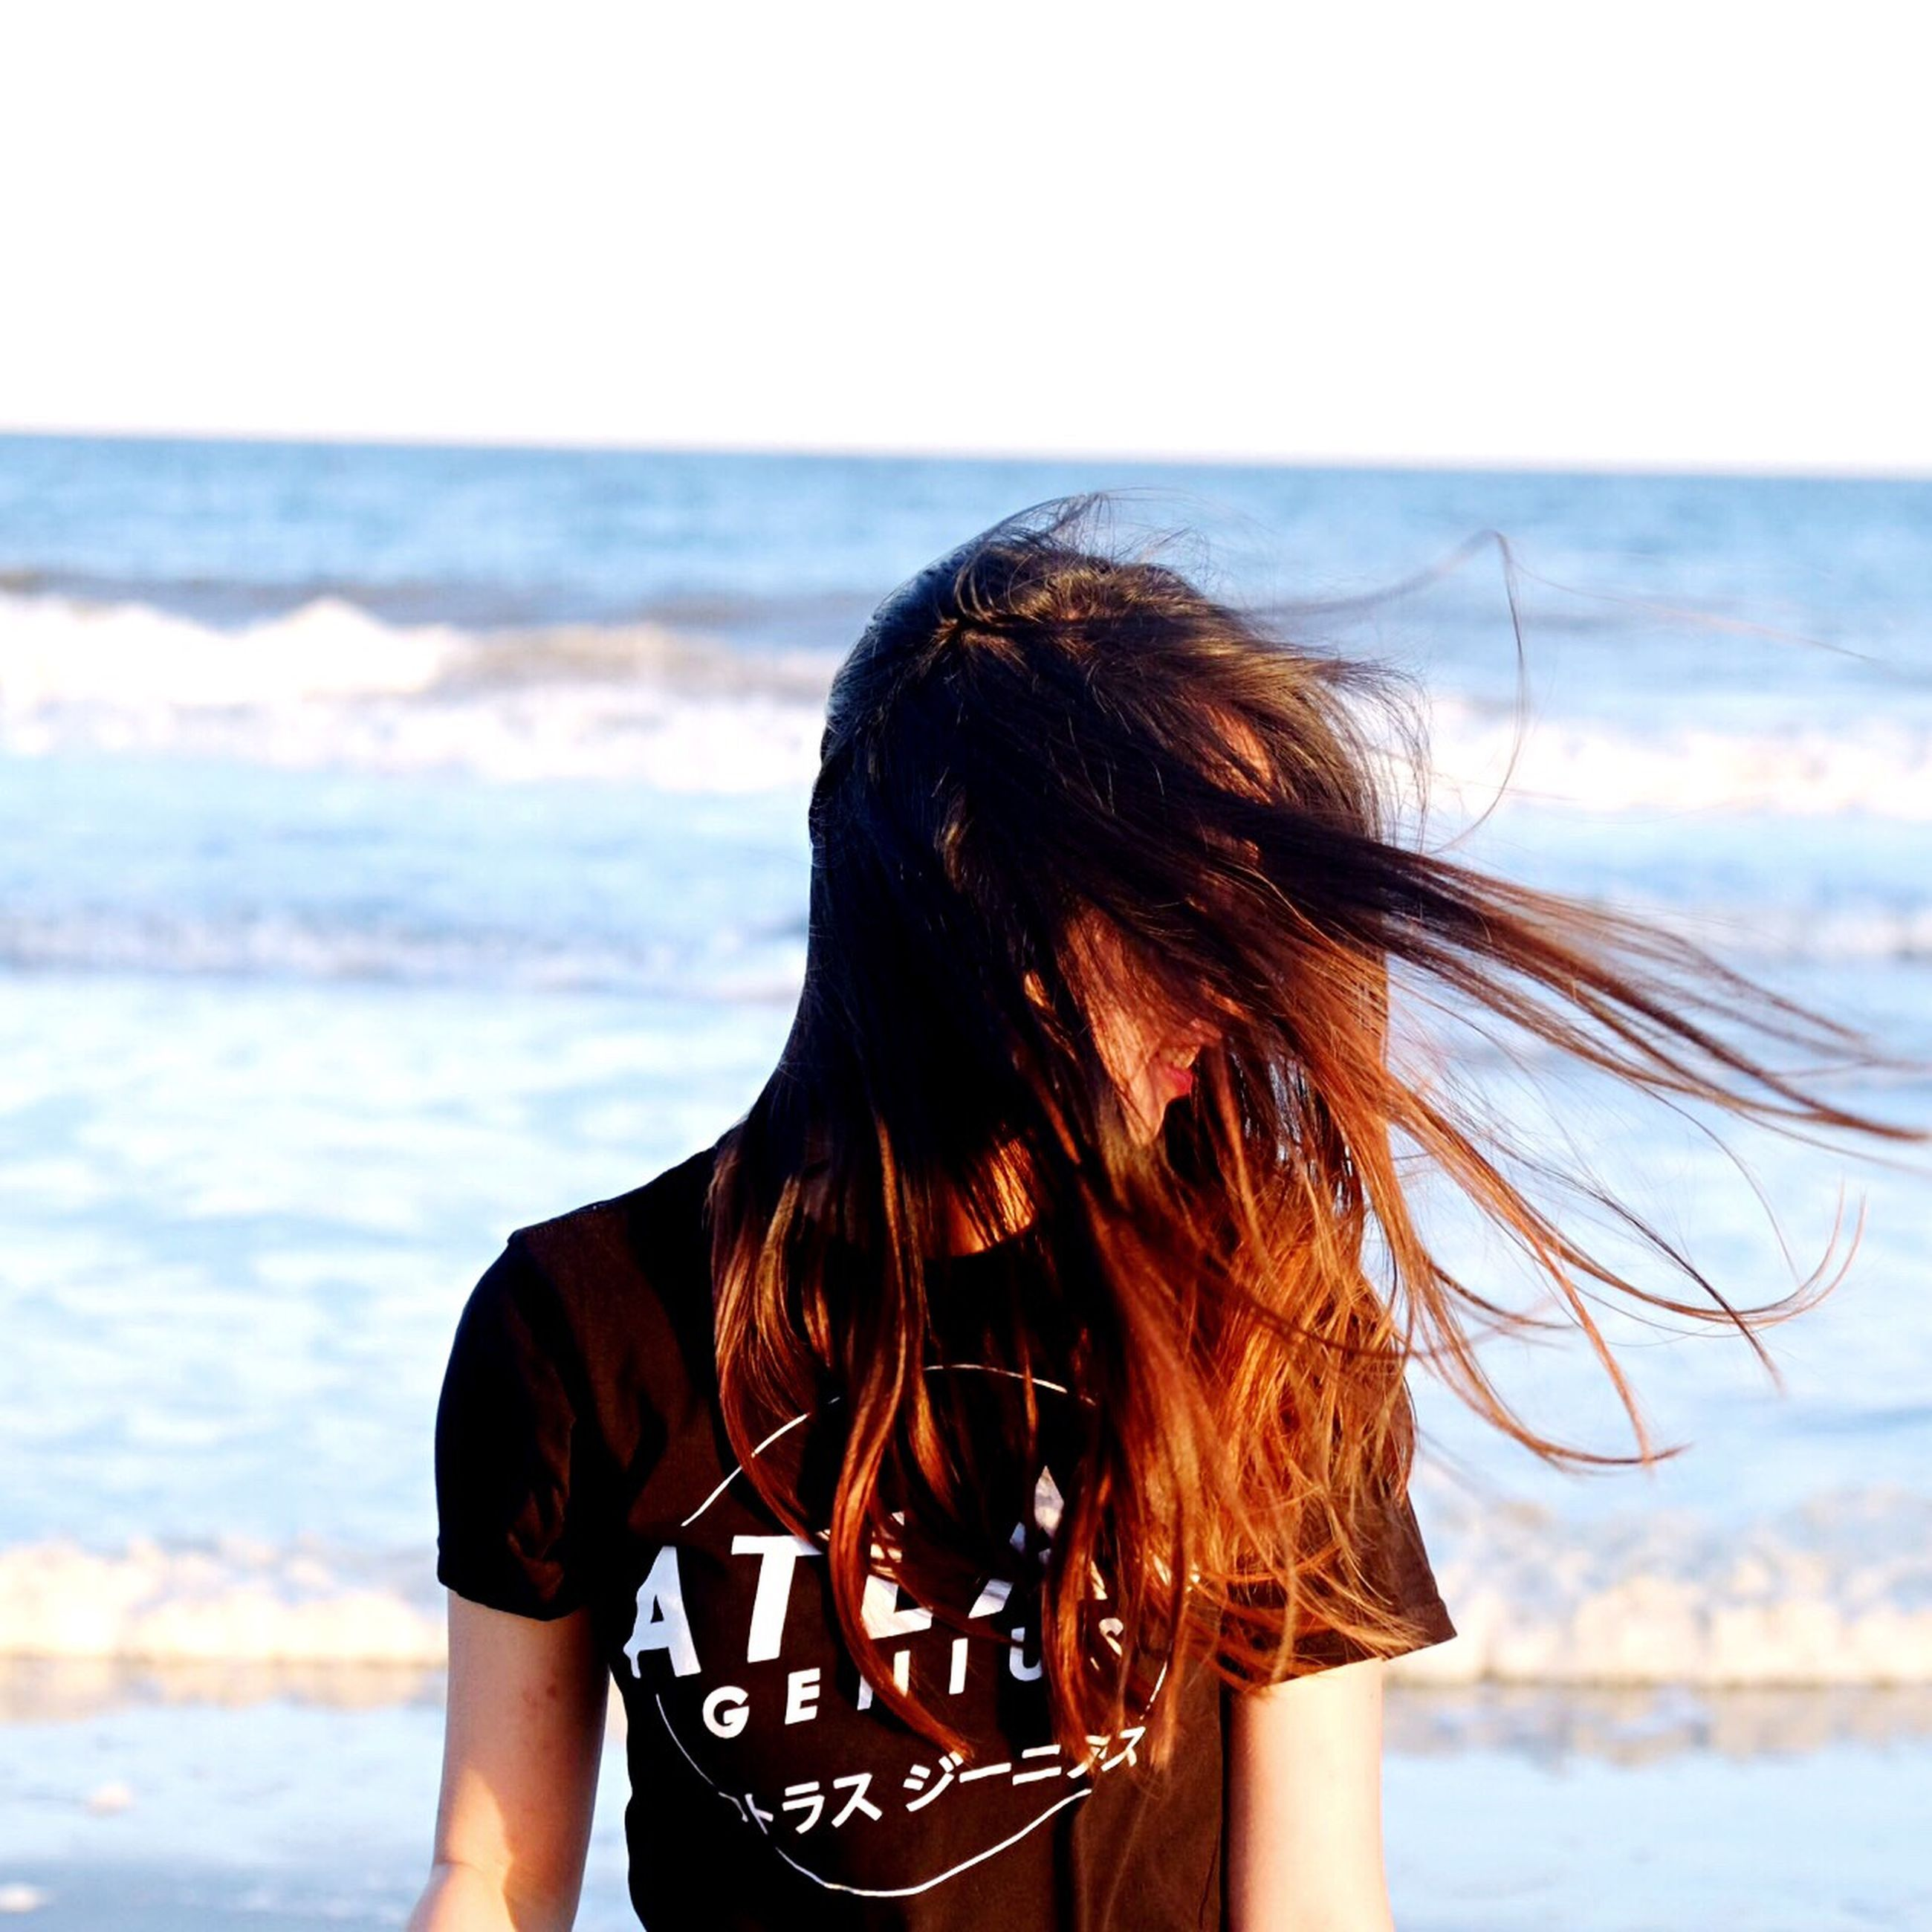 sea, long hair, person, water, lifestyles, leisure activity, rear view, young women, horizon over water, focus on foreground, beach, sky, young adult, brown hair, waist up, headshot, standing, nature